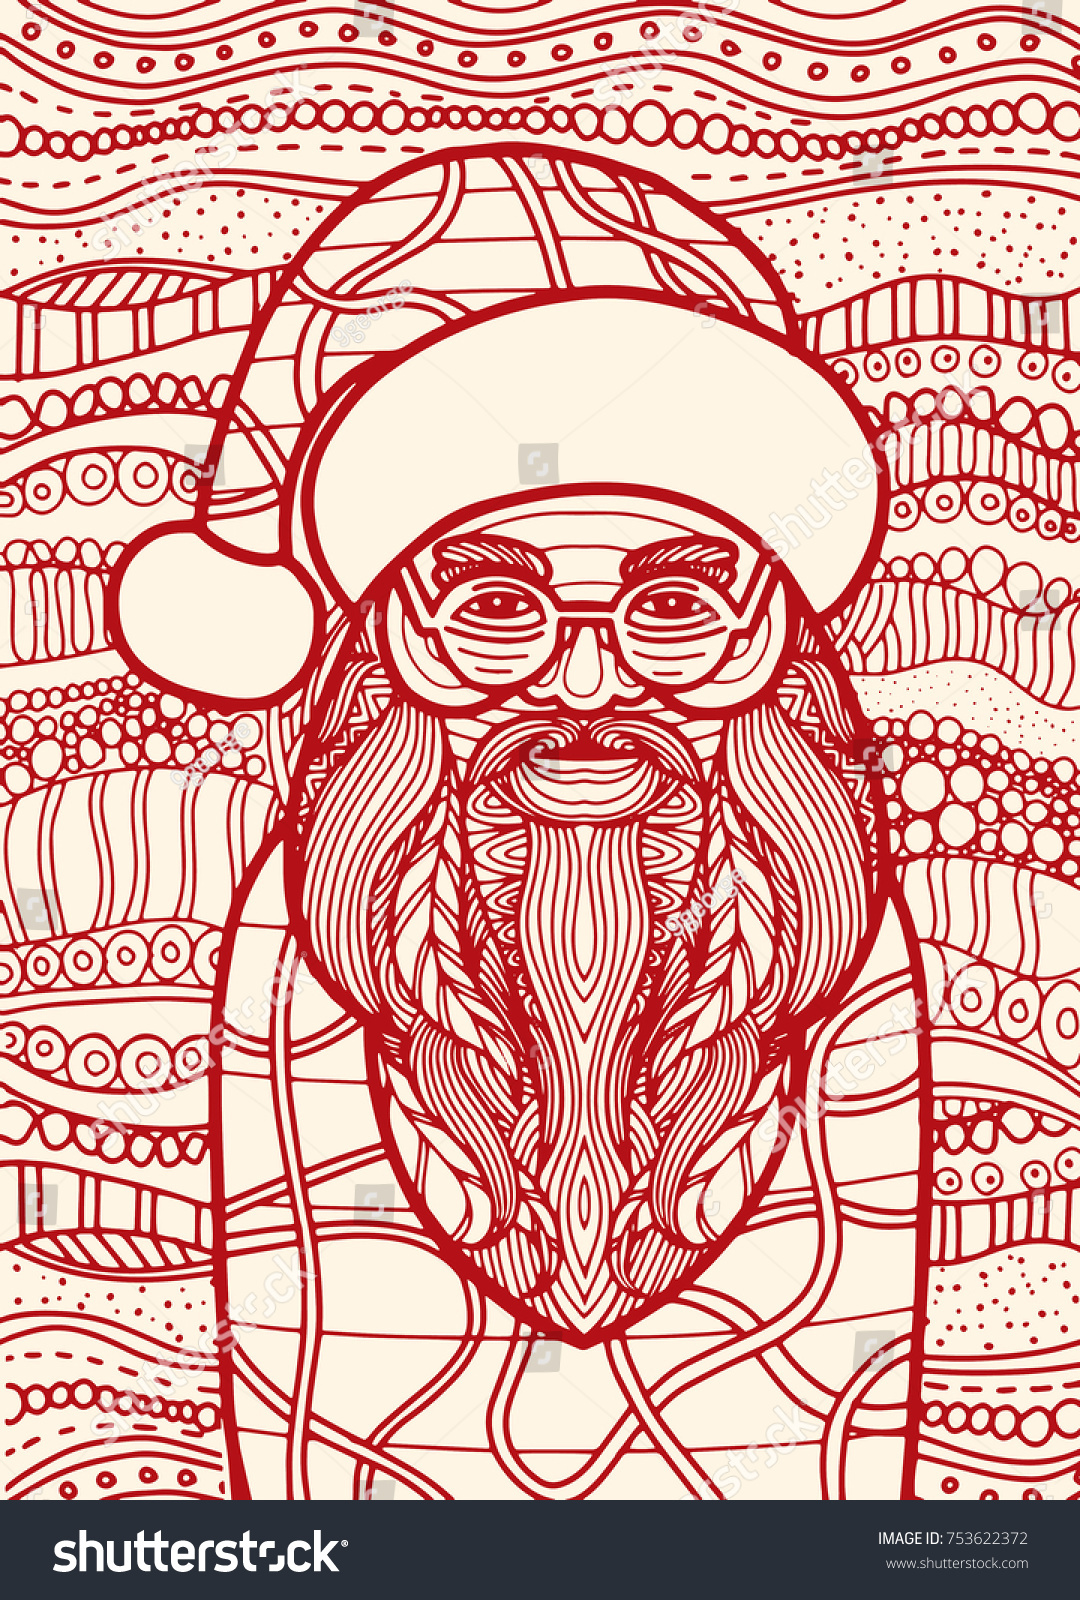 Drawing Santa claus zentangle style for coloring book, tattoo, shirt ...